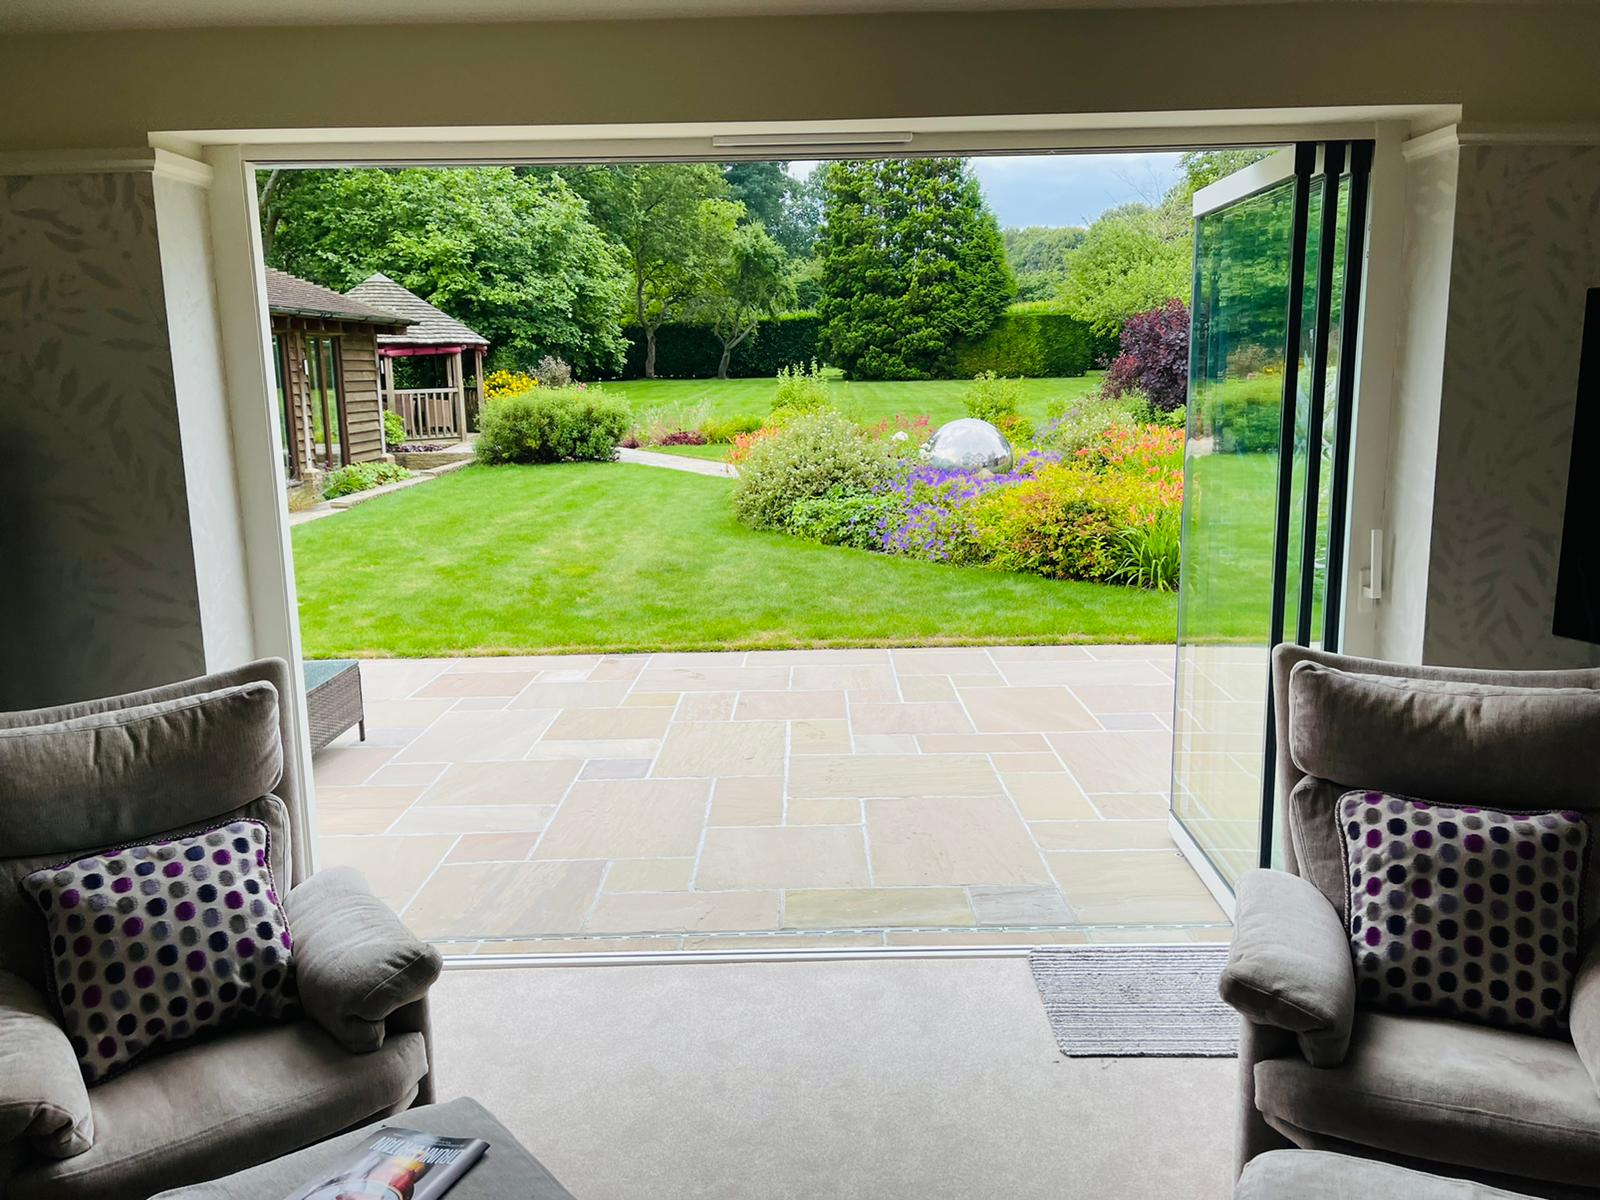 Slide and turn doors in the fully open position with garden views